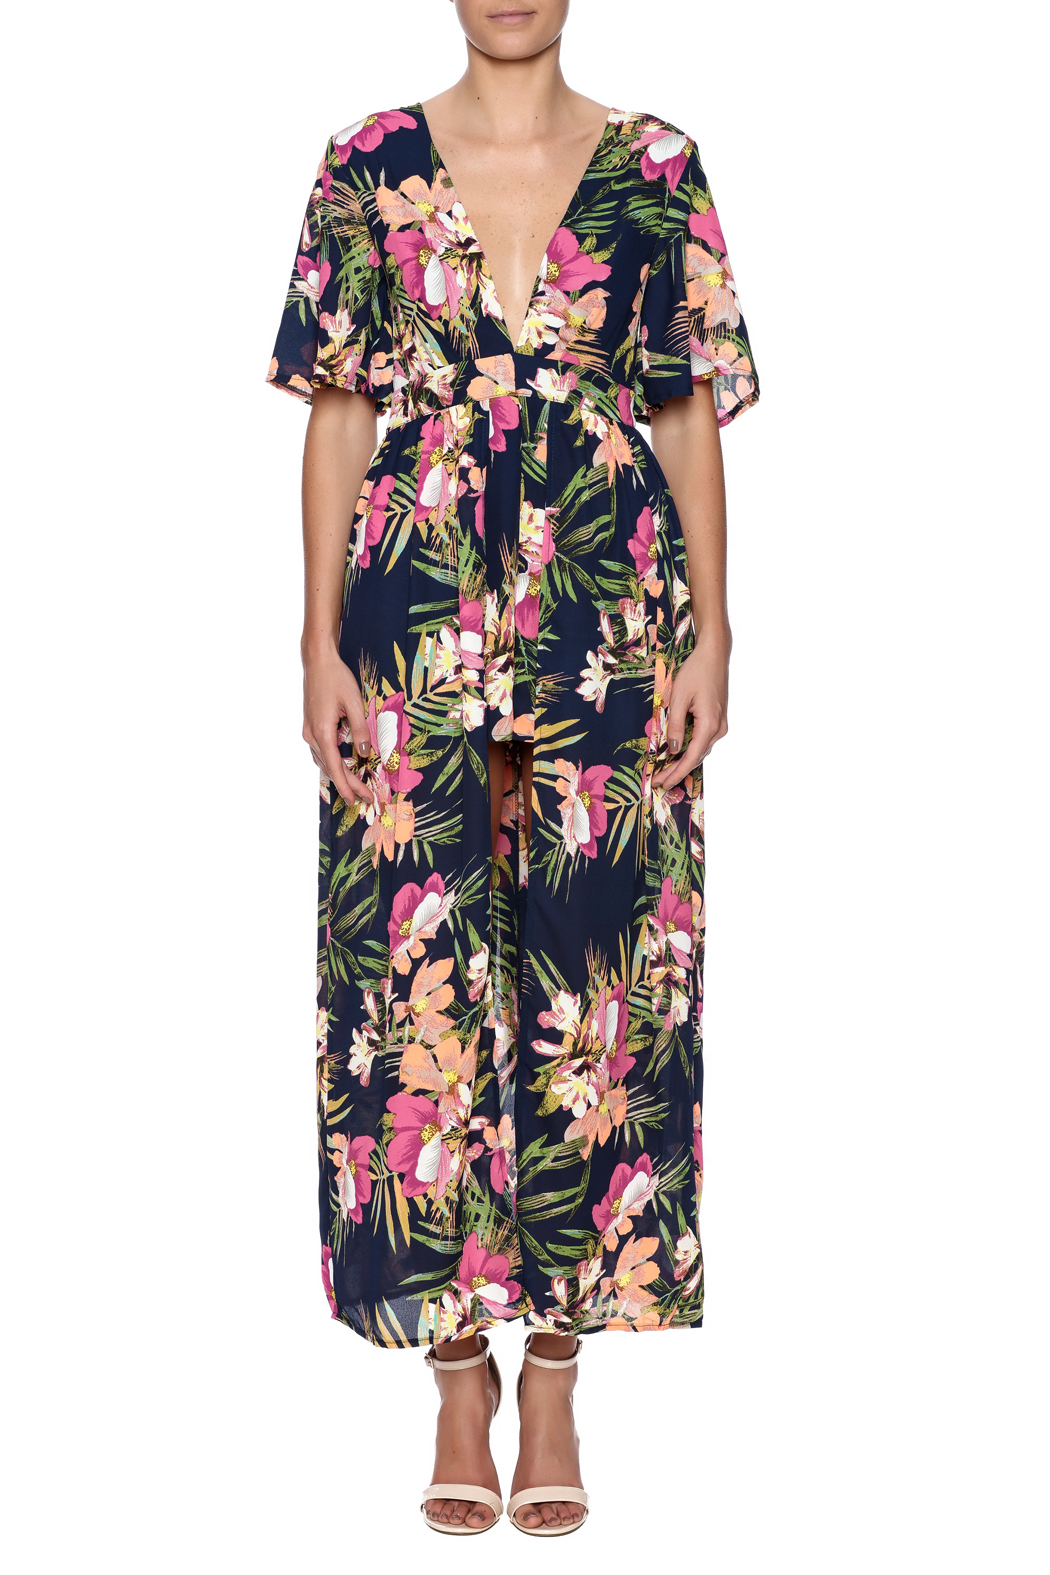 7545074a587 luxxel Floral Skirt Overlay Romper from Charleston by Apricot Lane ...